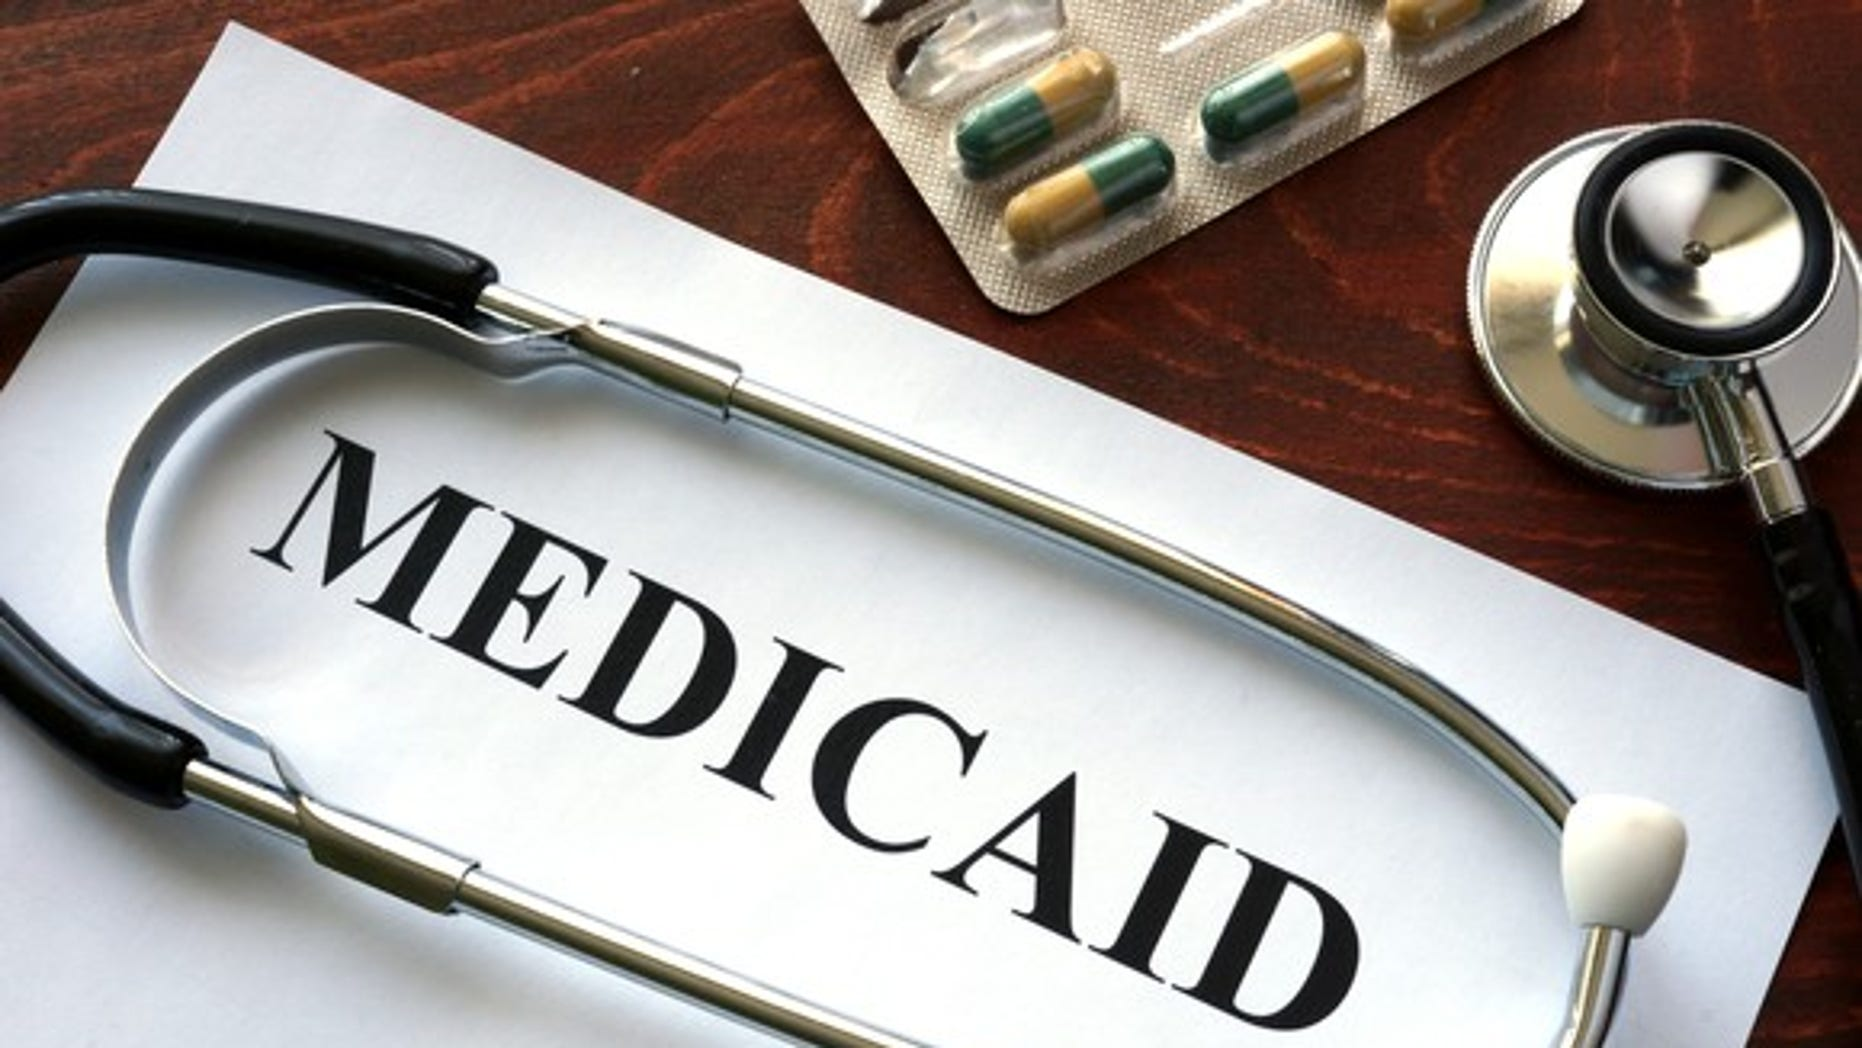 Federal judge blocks Medicaid work rules in setback for ...